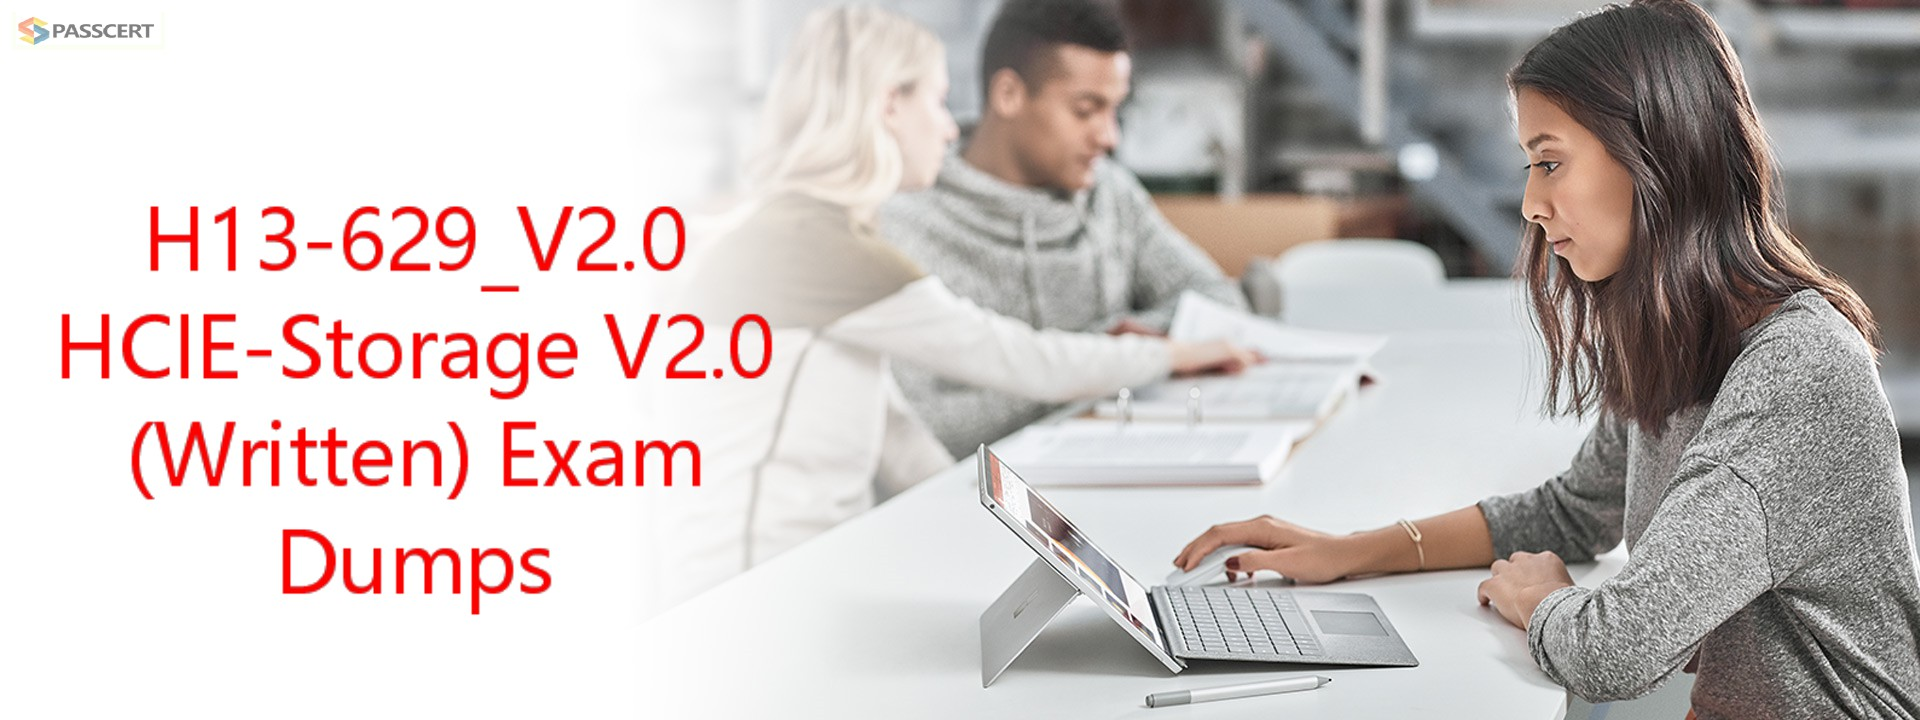 H13-629_V2.0 HCIE-Storage V2.0 (Written) Exam Dumps